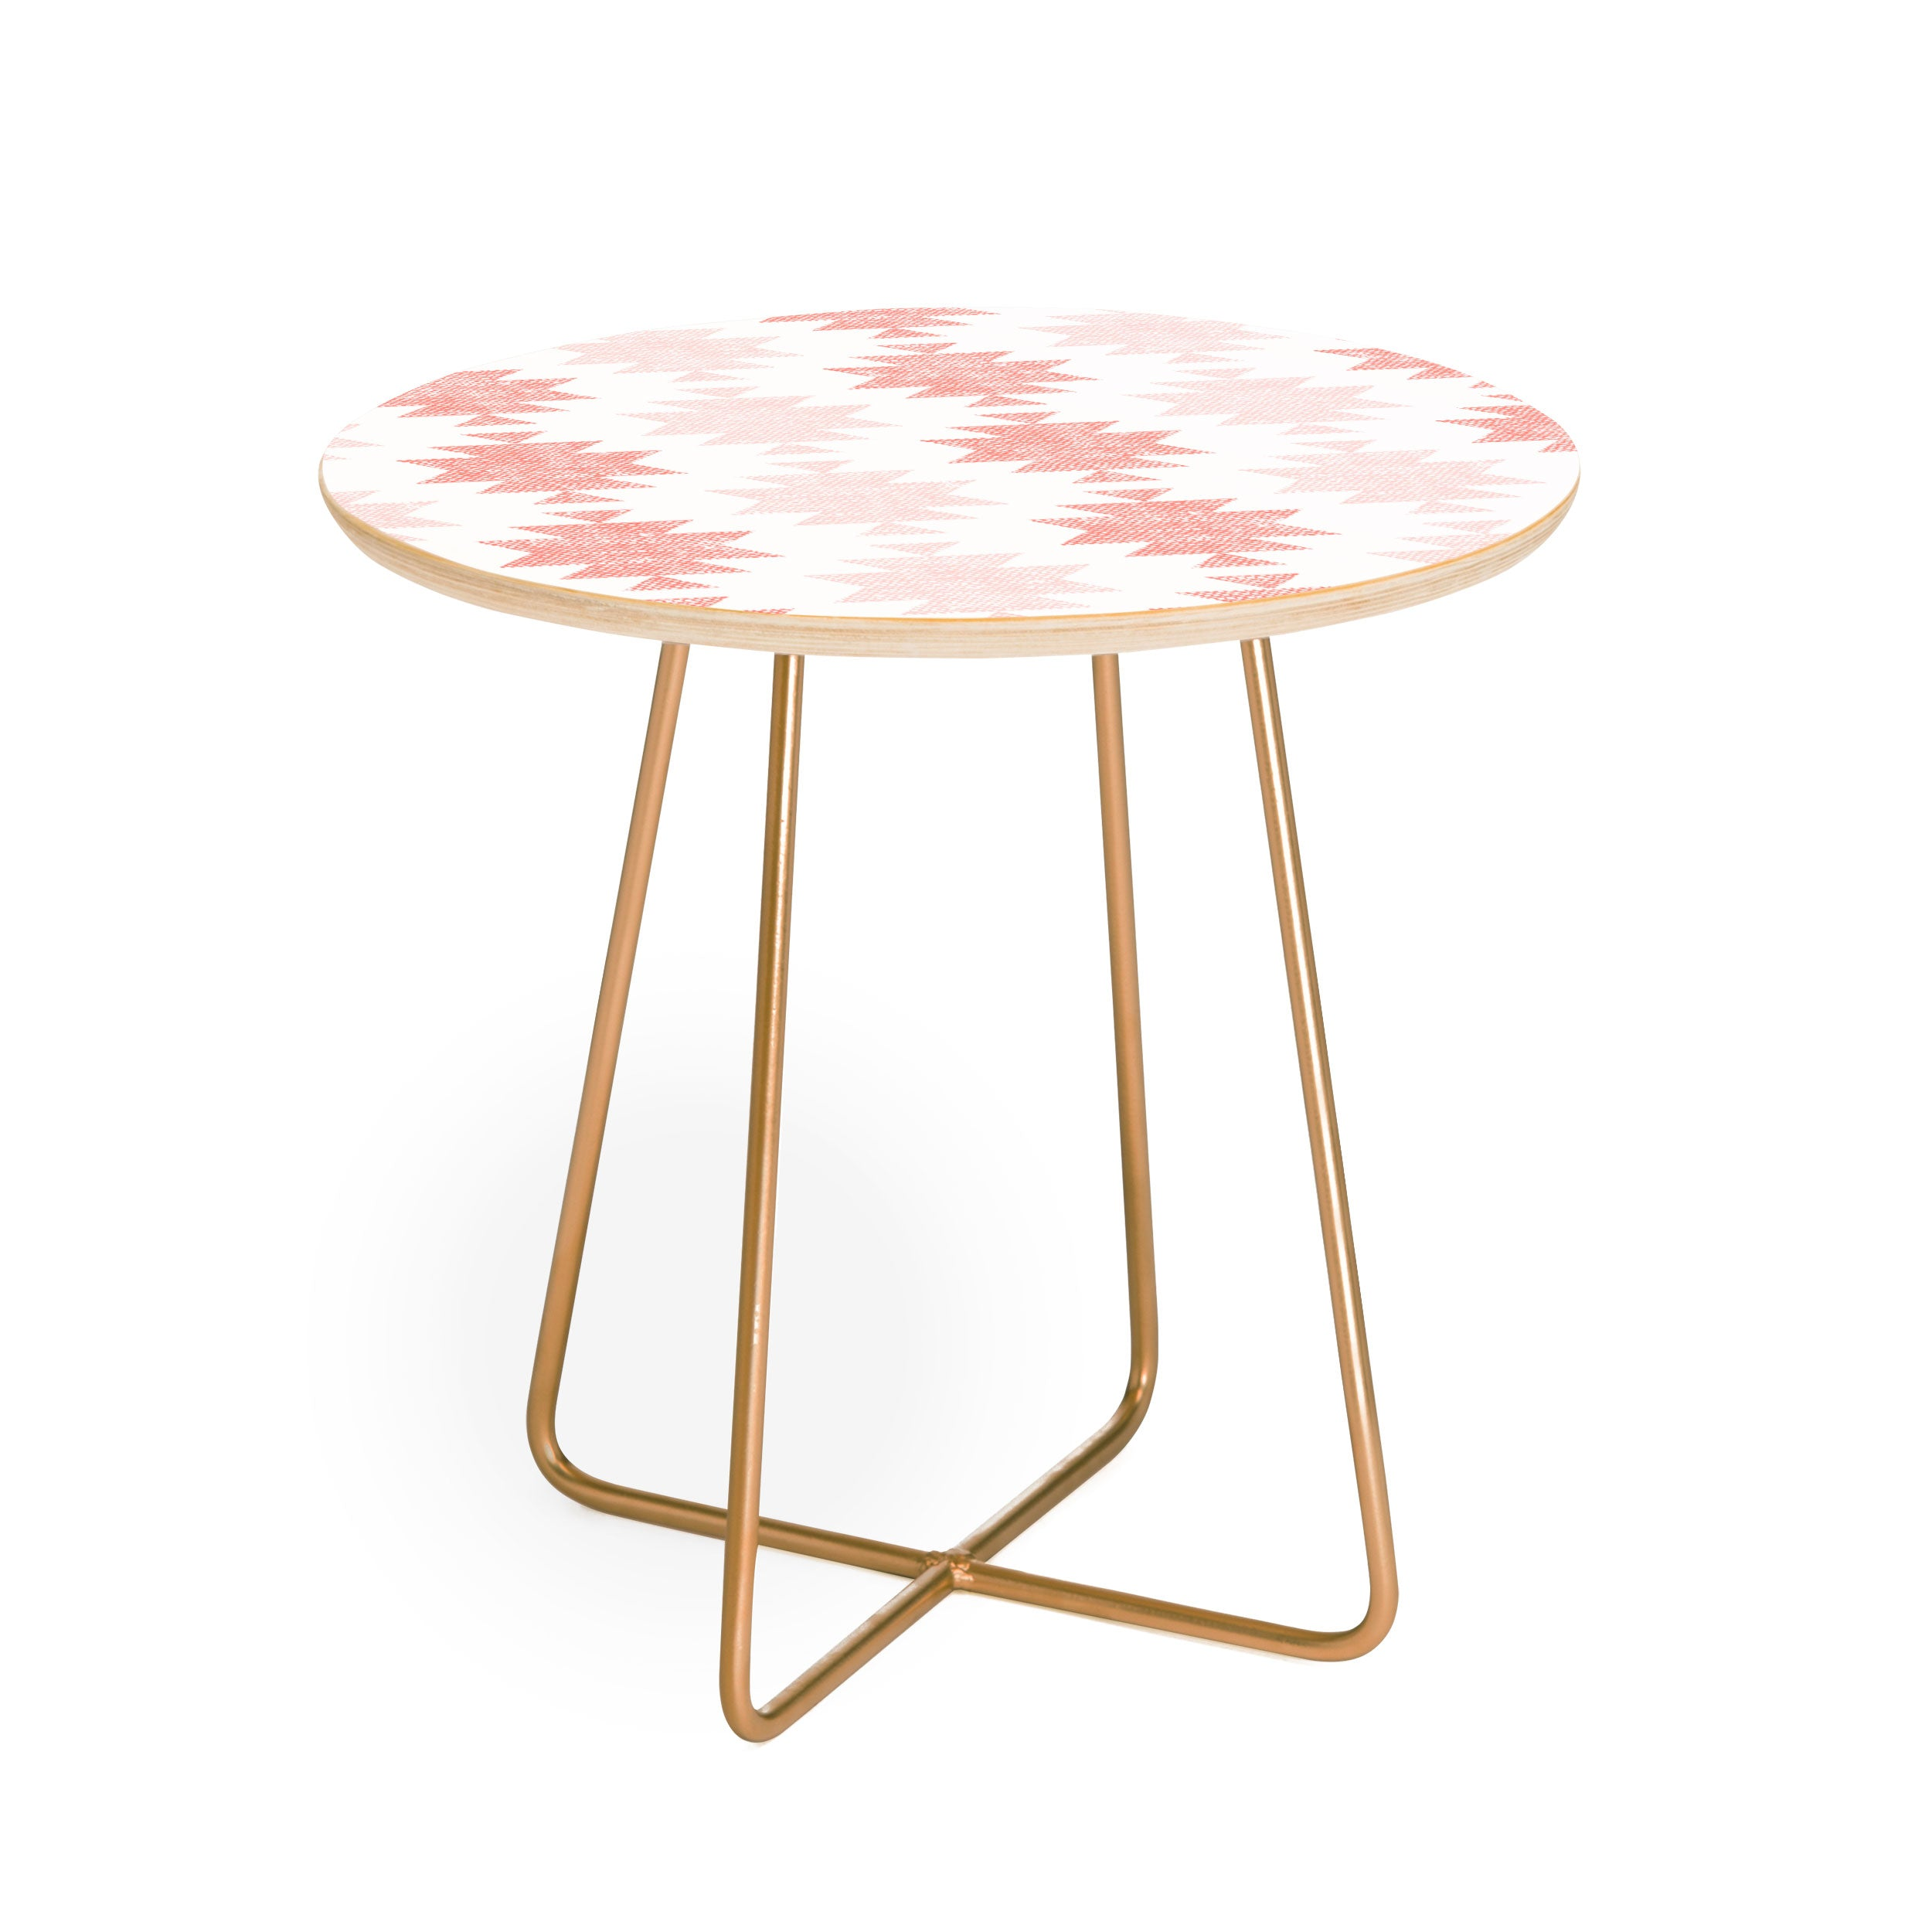 Little Arrow Design Co Woven Aztec in Coral Round Side Table